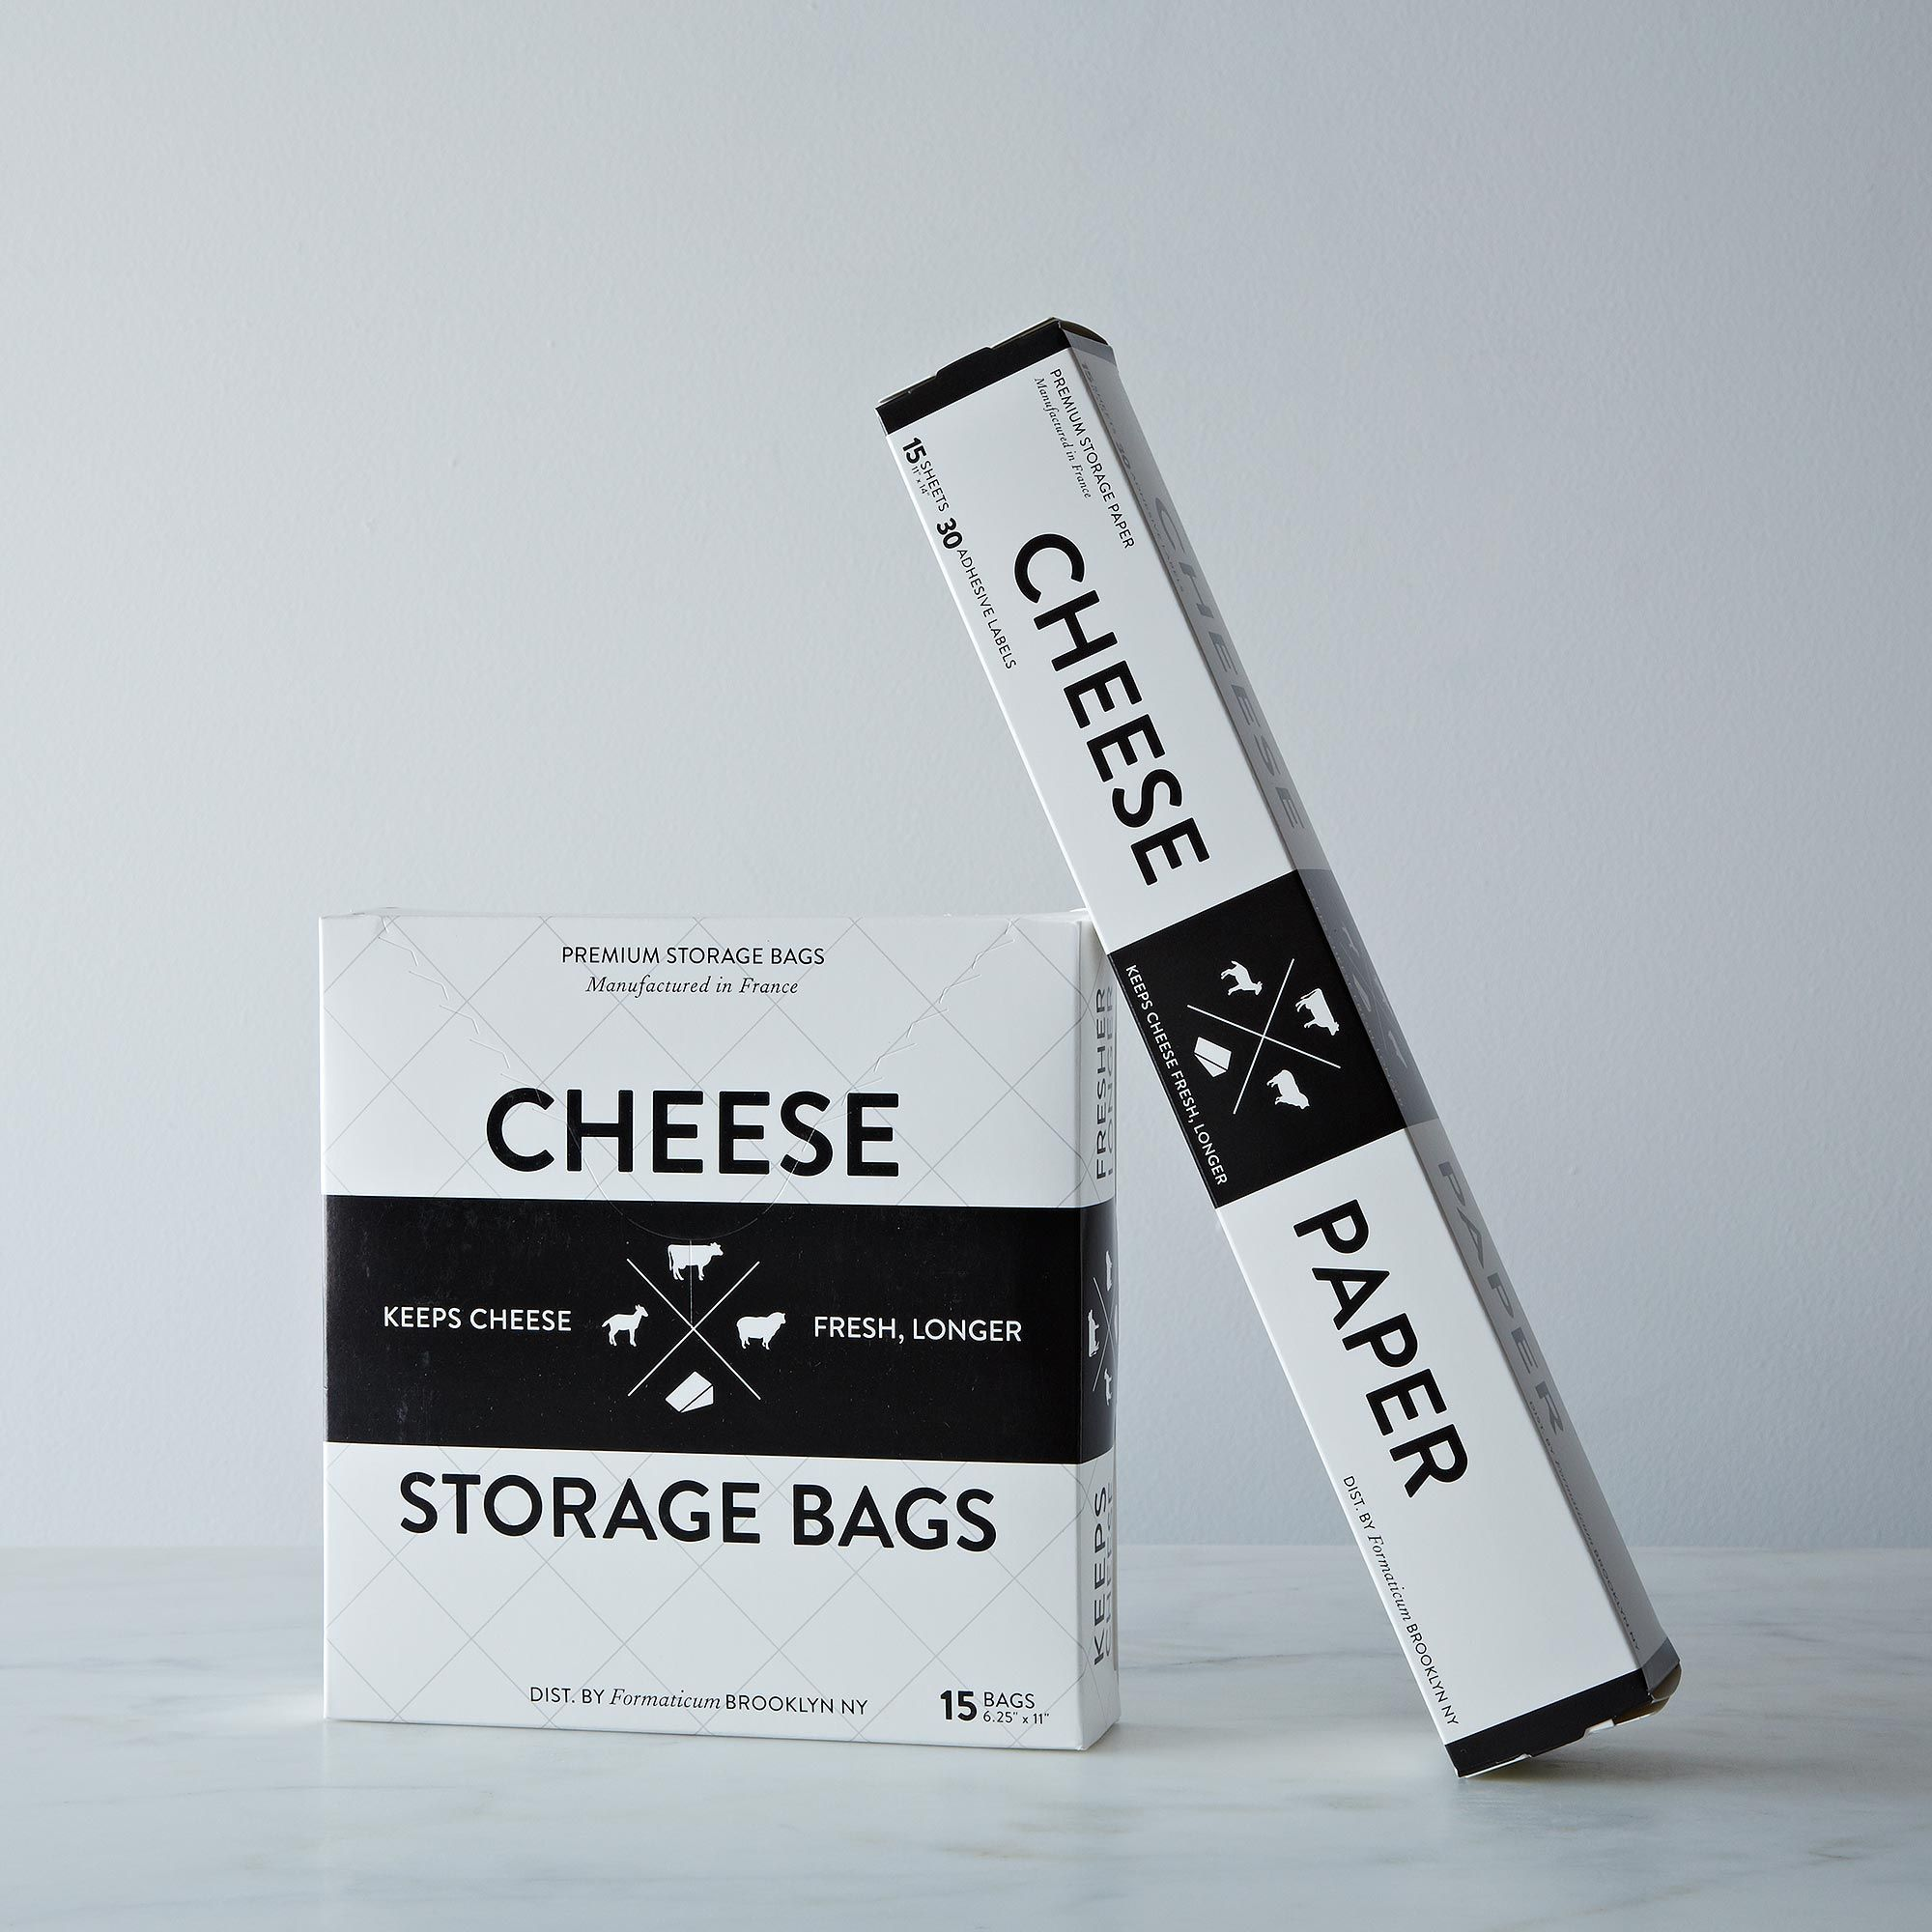 F0f7b025 3350 48b3 8a33 3d26edaa4b75  2013 0920 formaticum cheese storage paper and bags 007